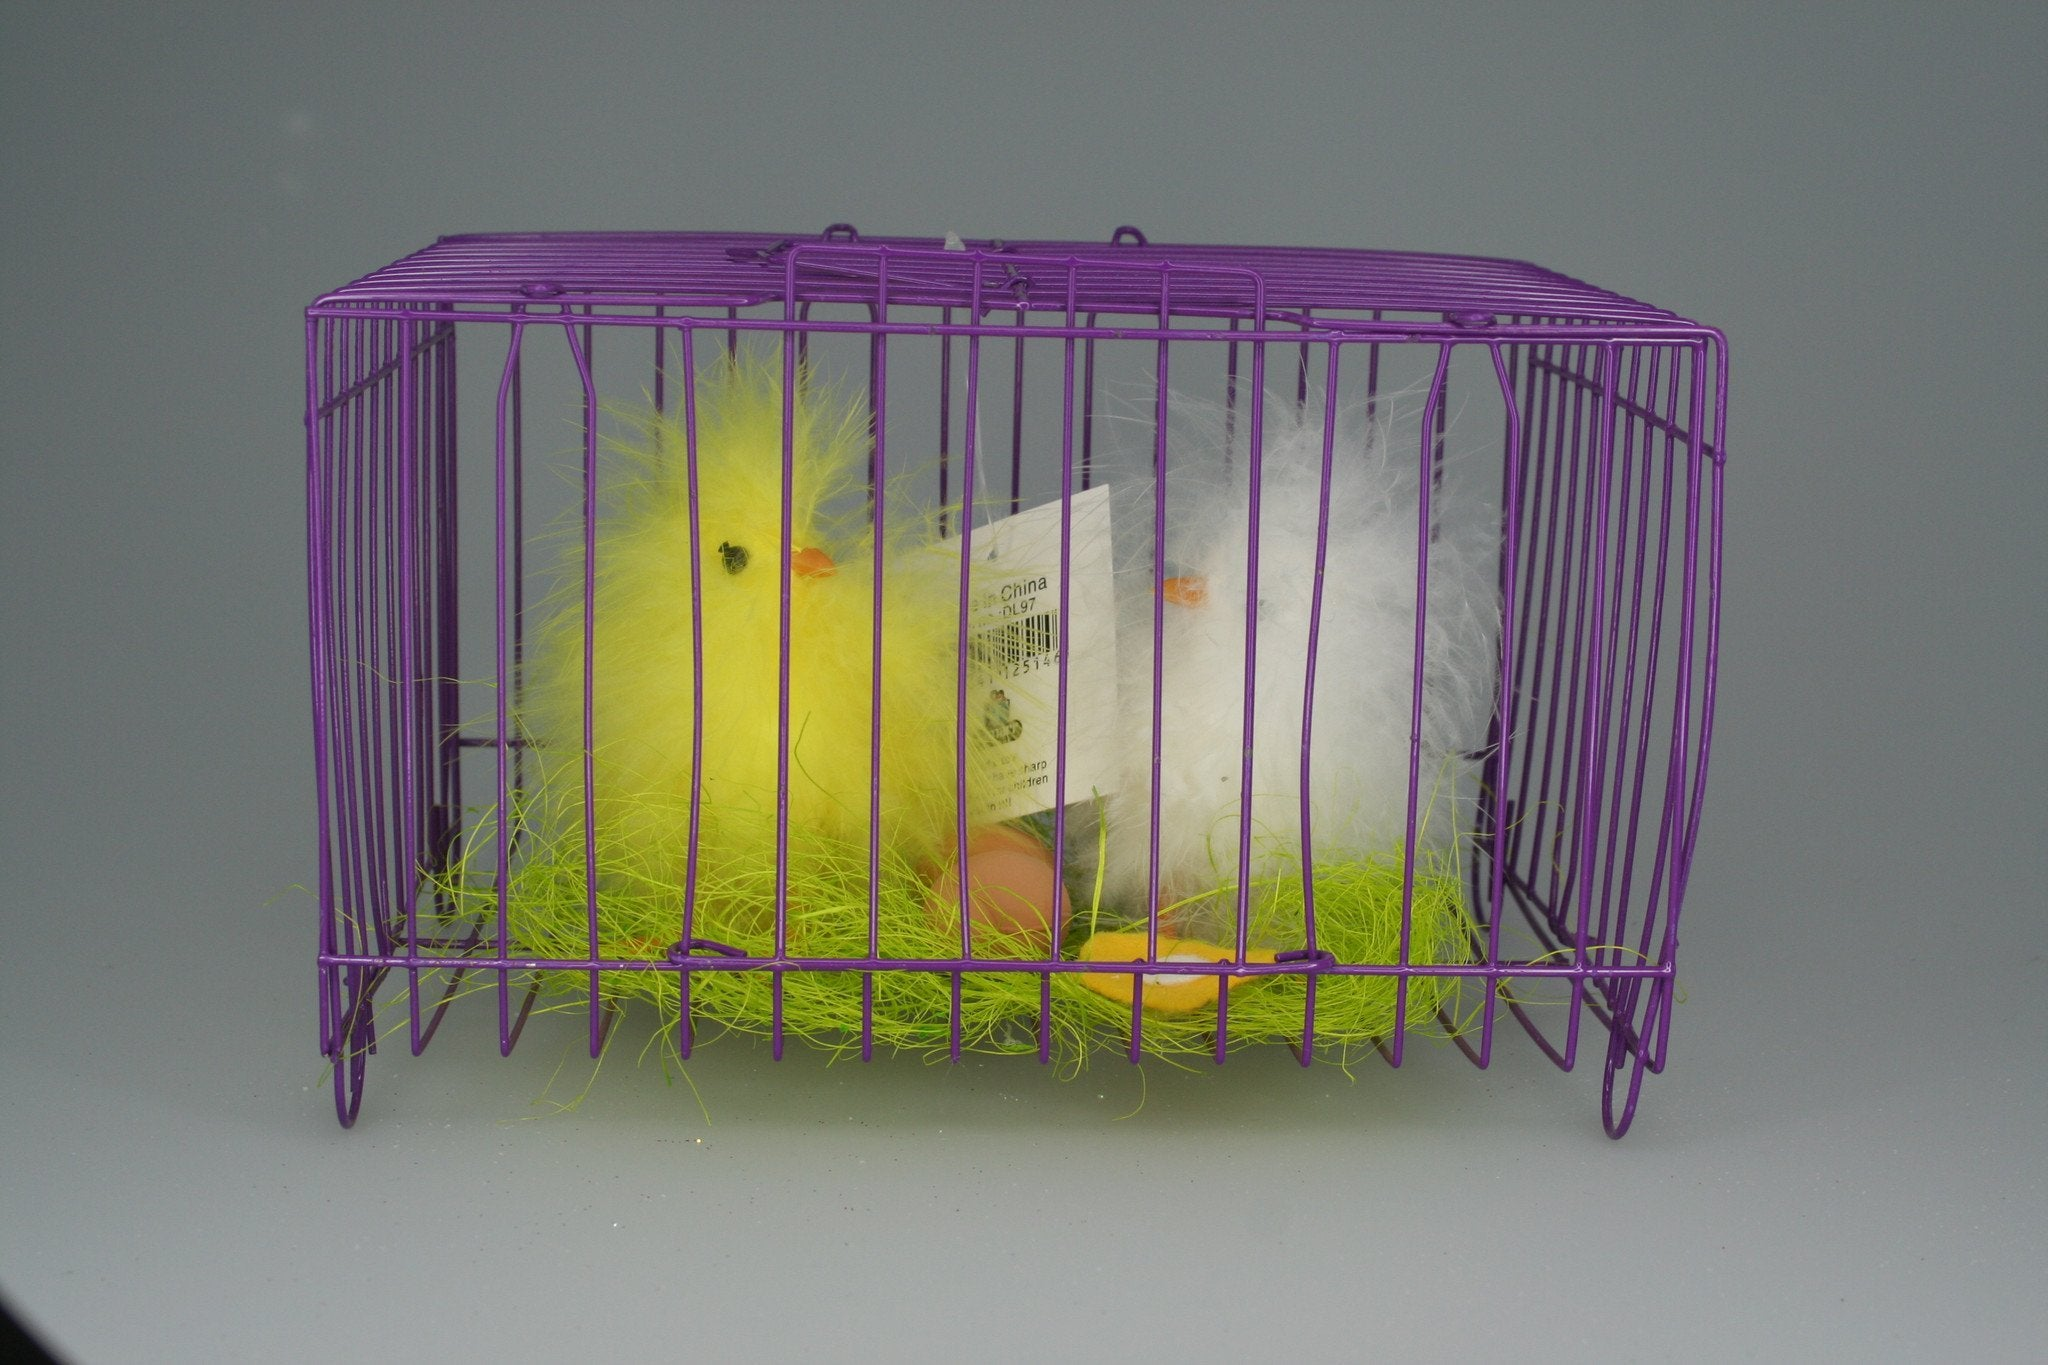 DL97 - 2 Chicks in Purple Cage - Tamarr Imports Innovative Giftware Pty Ltd